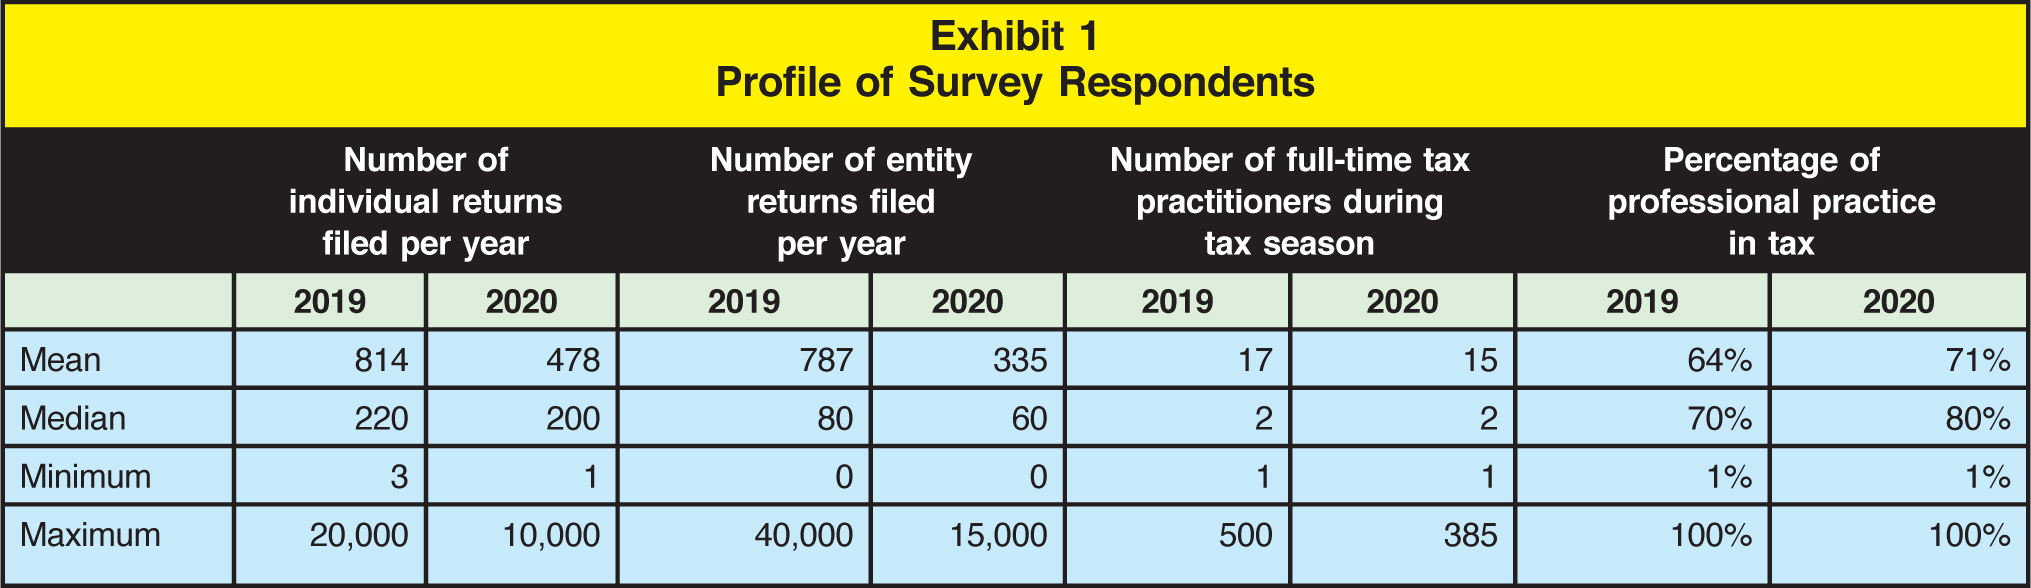 Number of individual returns filed per year; Number of entity returns filed per year; Number of full-time tax practitioners during tax season; Percentage of professional practice in tax 2019; 2020; 2019; 2020; 2019; 2020; 2019; 2020 Mean; 814; 478; 787; 335; 17; 15; 64%; 71% Median; 220; 200; 80; 60; 2; 2; 70%; 80% Minimum; 3; 1; 0; 0; 1; 1; 1%; 1% Maximum; 20,000; 10,000; 40,000; 15,000; 500; 385; 100%; 100%